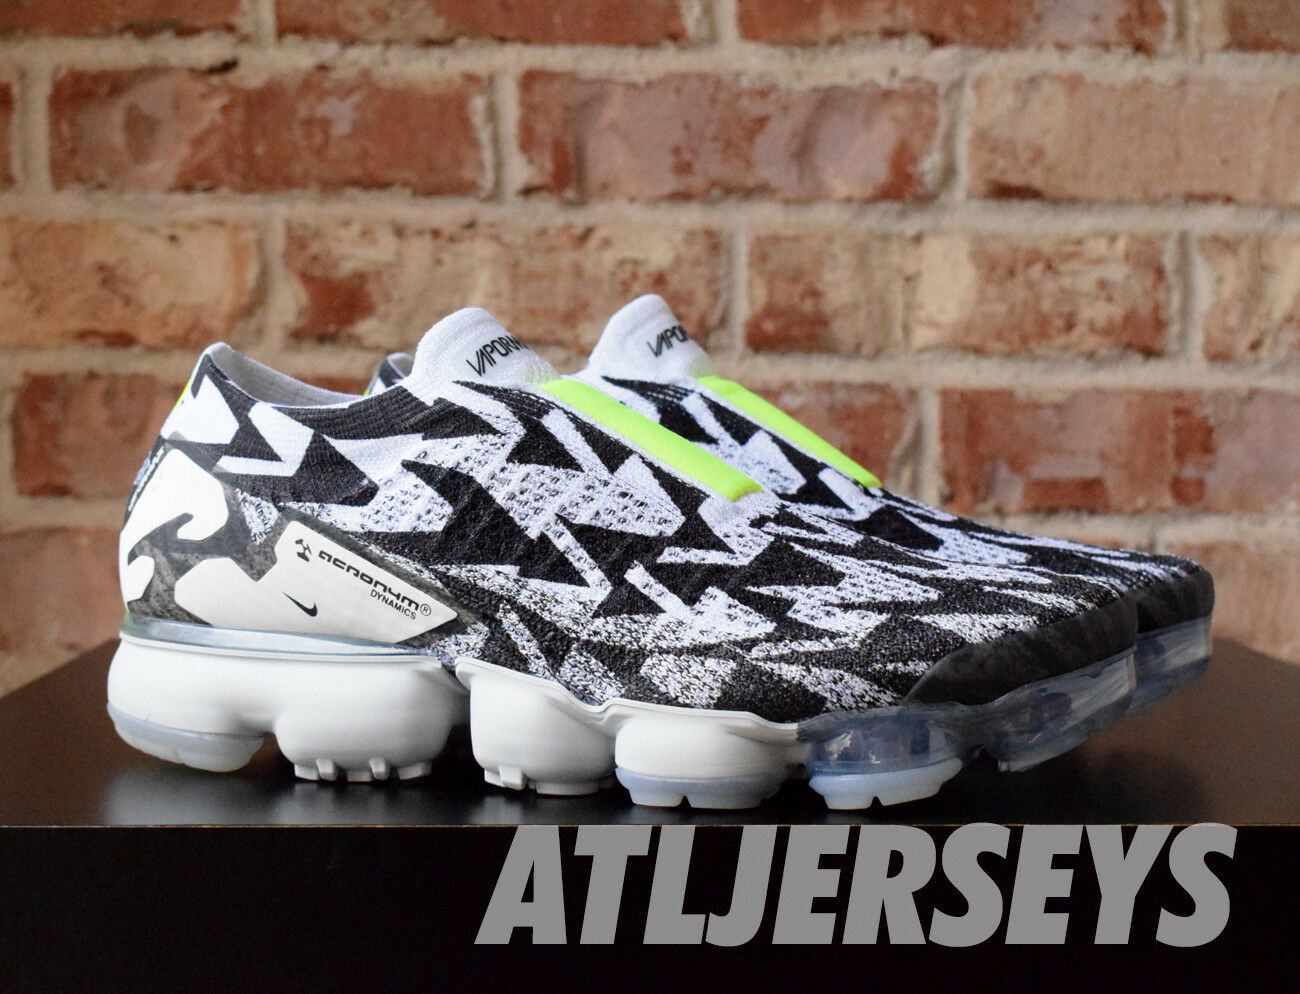 Acronym Nike Air Vapormax Moc 2 Light Bone White Black AQ0996-001 Size 3-15